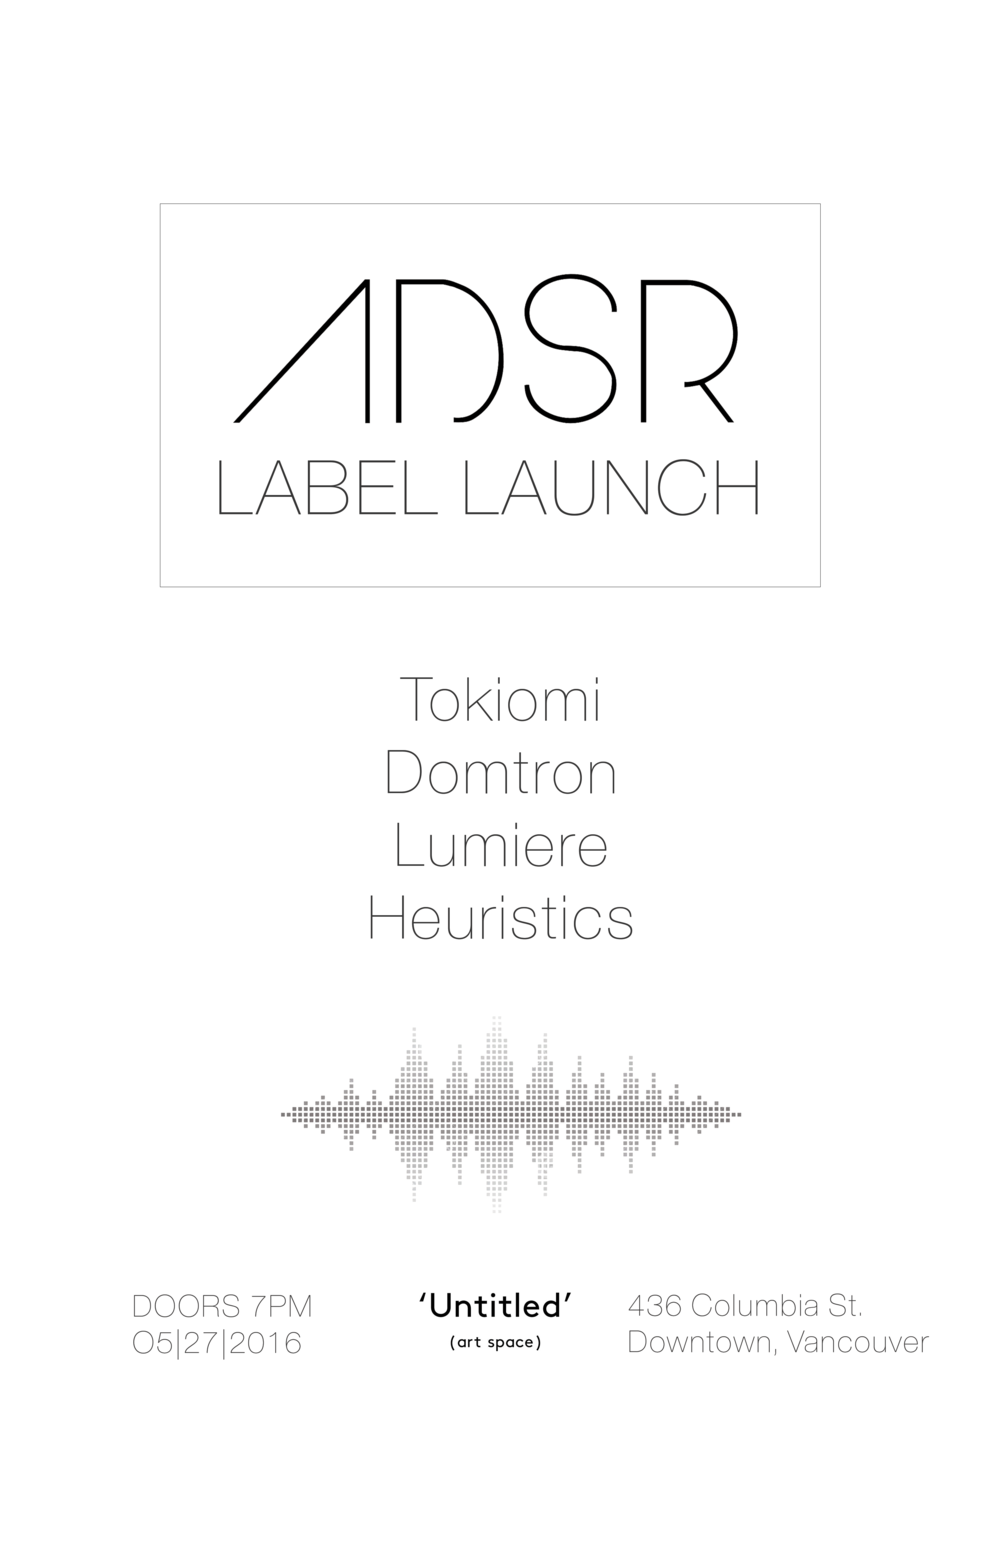 ADSR Label launch